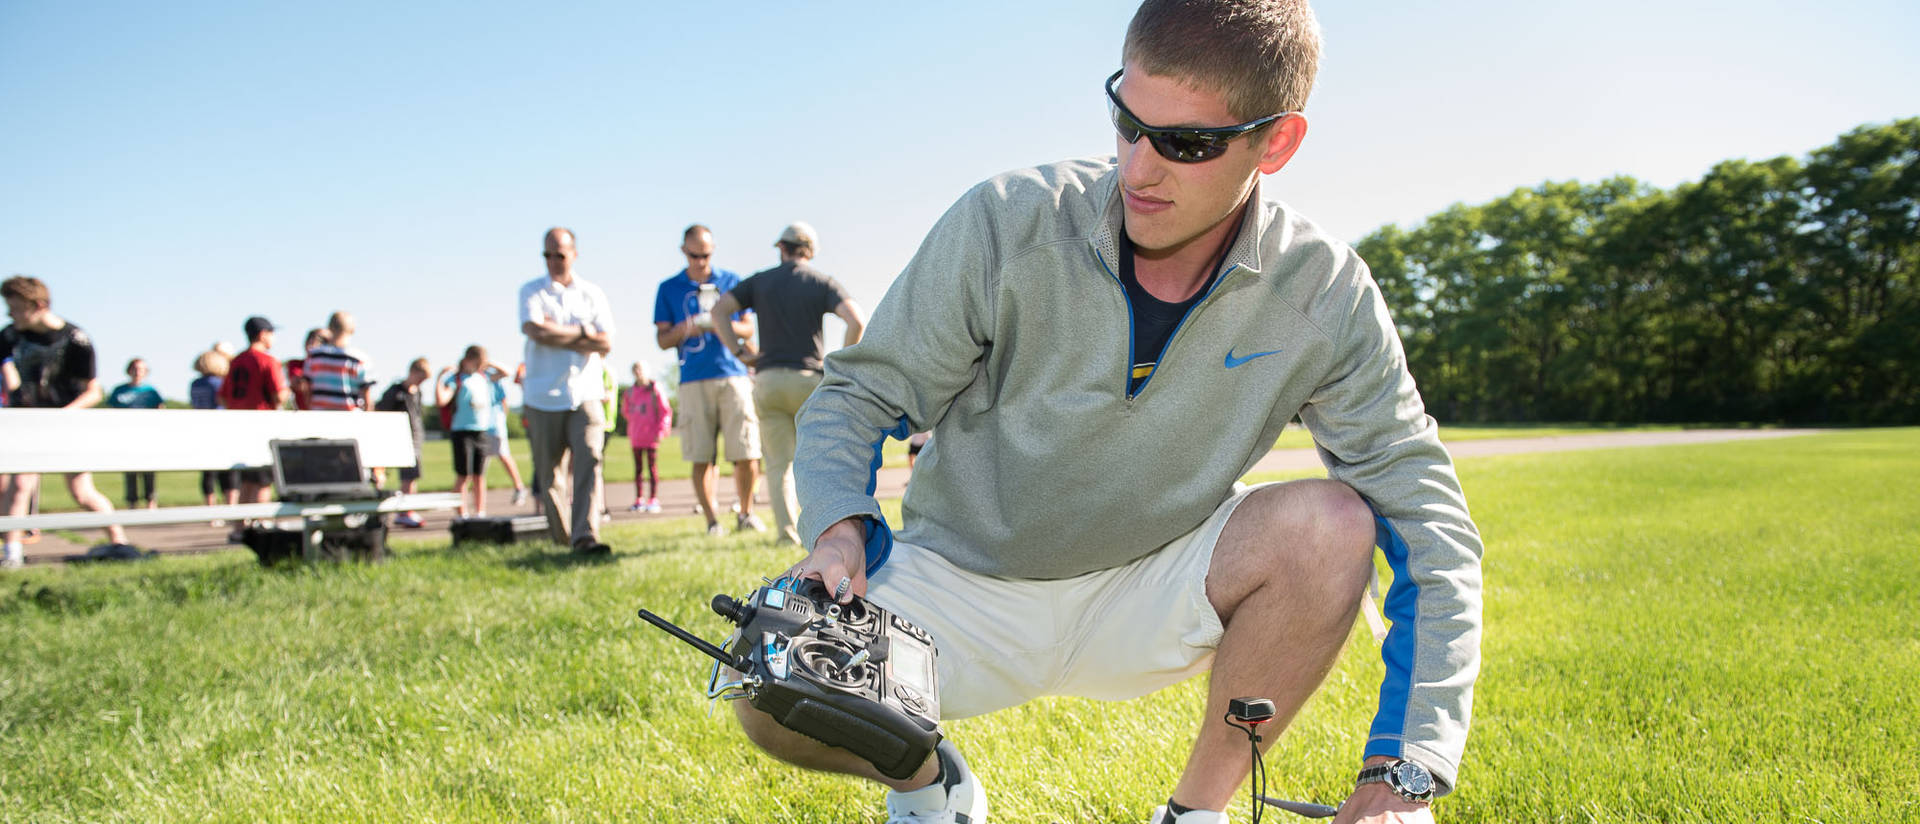 Student and an unmanned aerial vehicle (UAV)